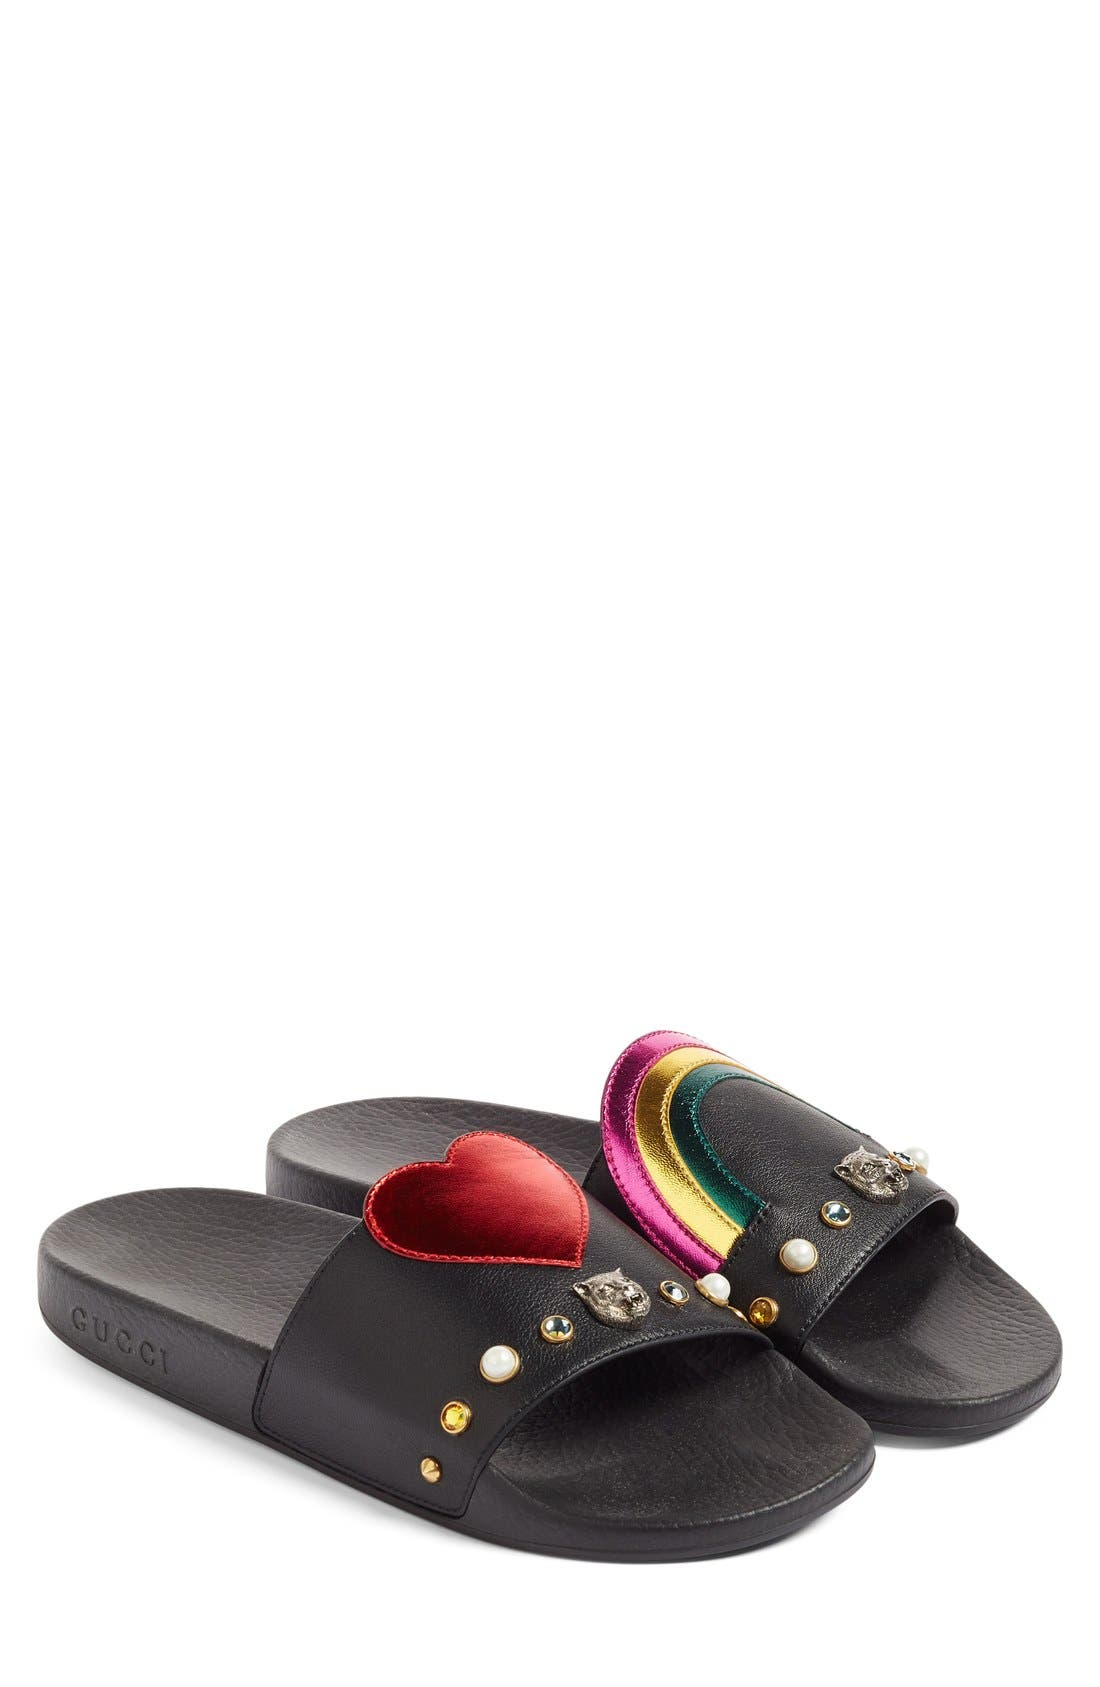 Pursuit Slide Sandal,                             Alternate thumbnail 6, color,                             001